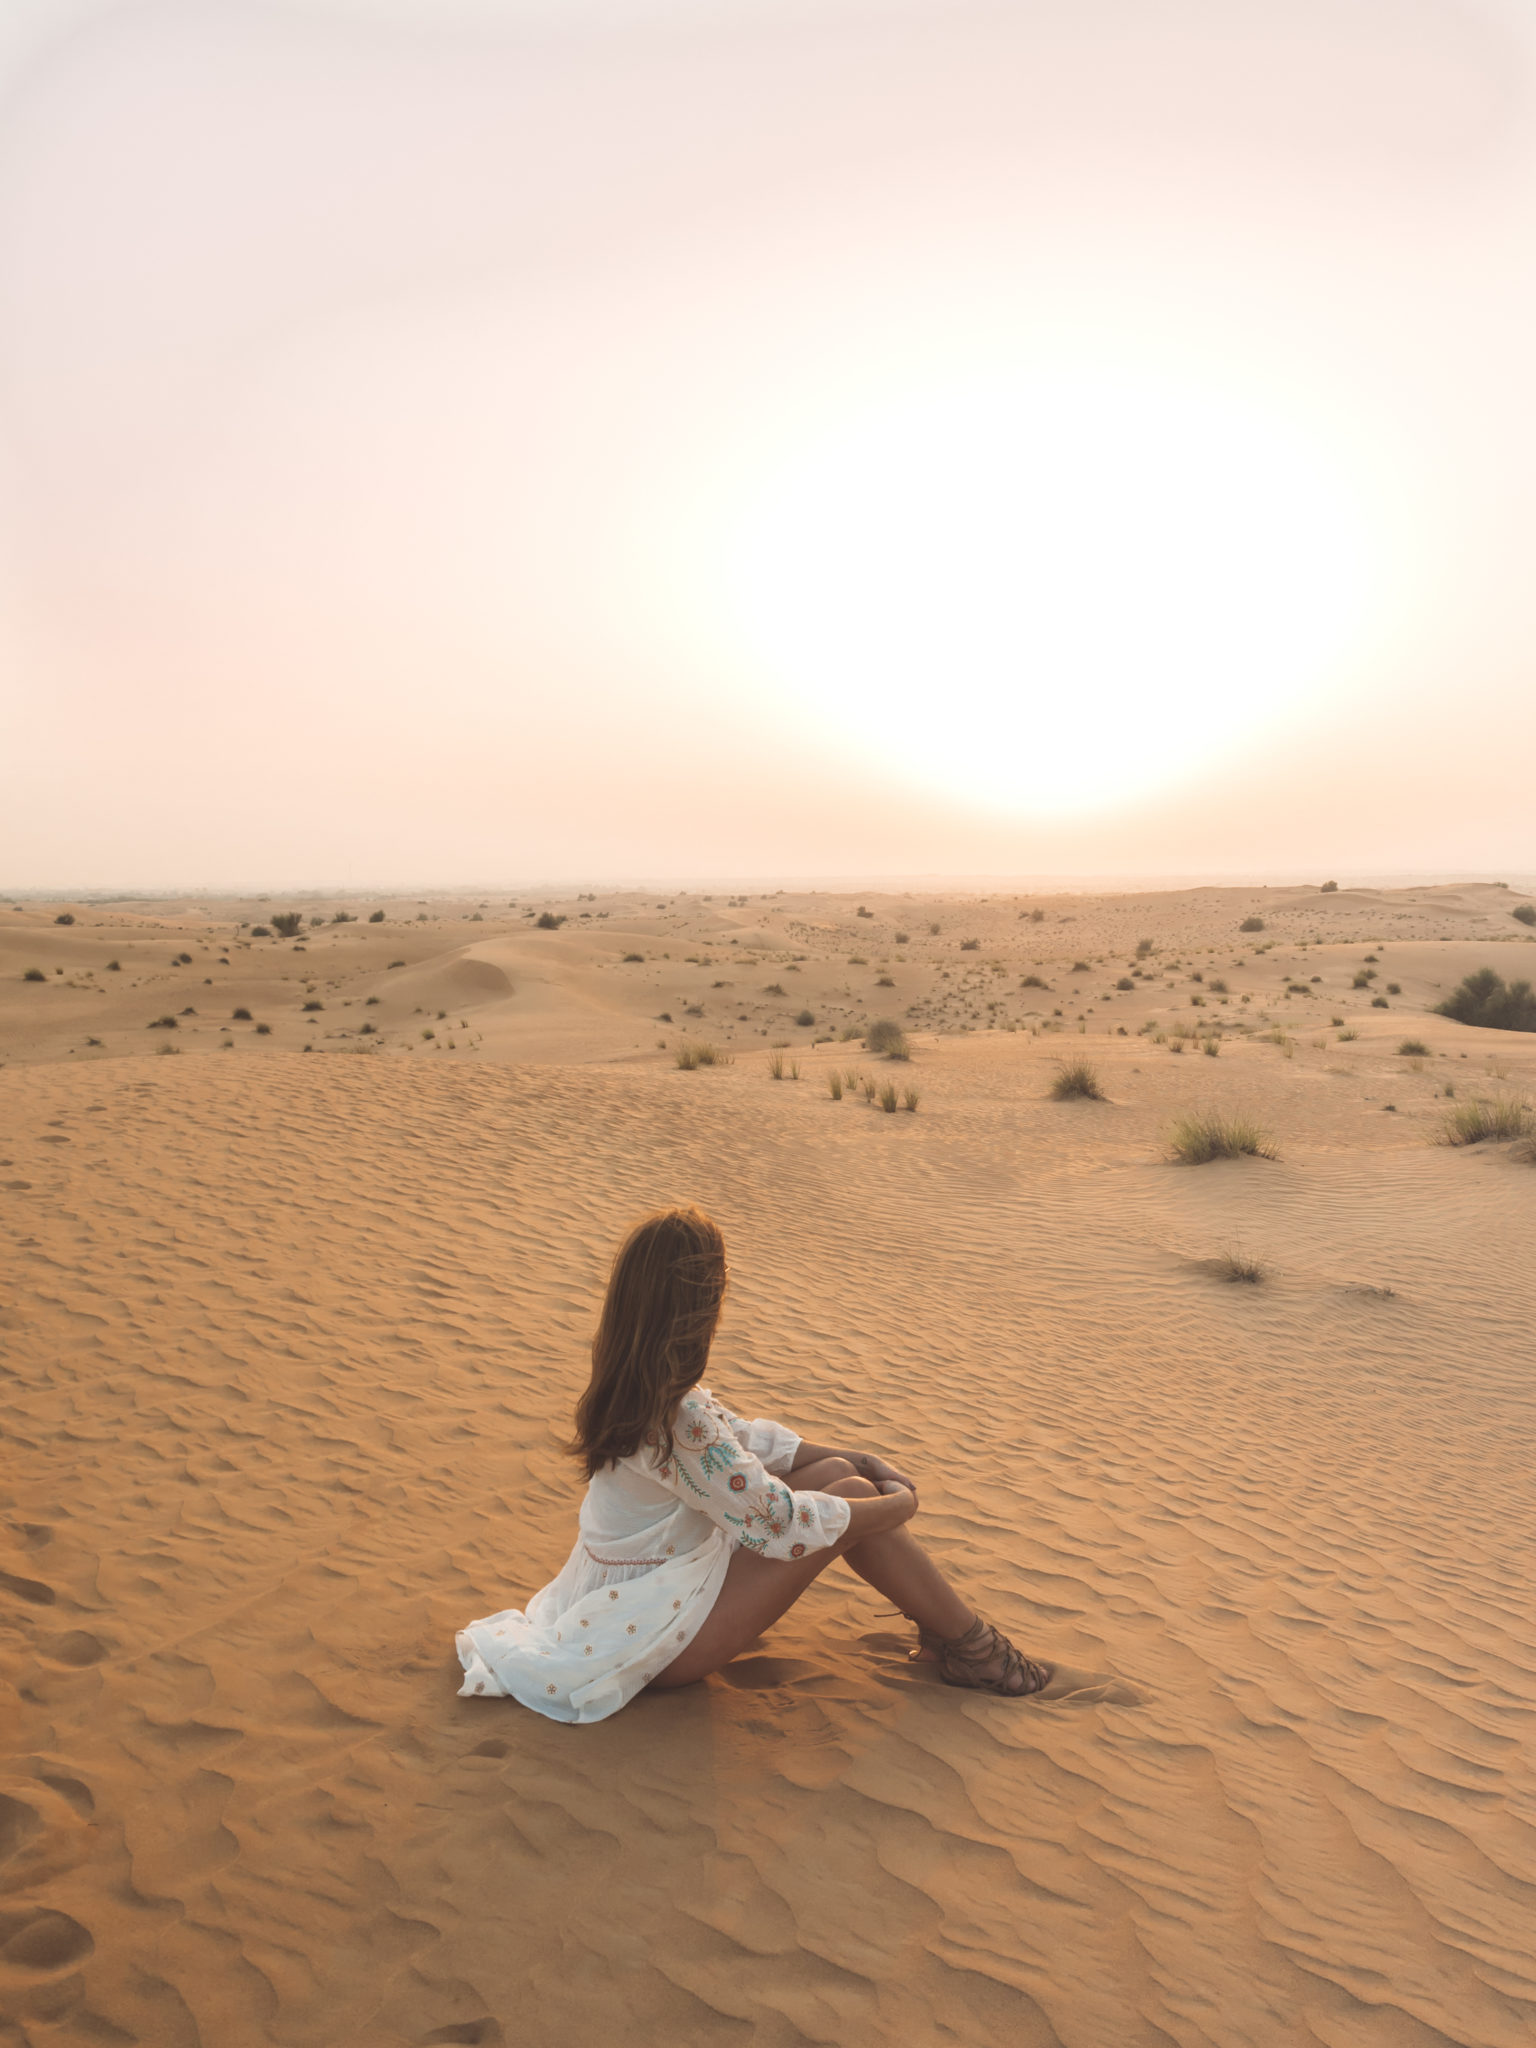 Desert Safari in Dubai | WORLD OF WANDERLUST